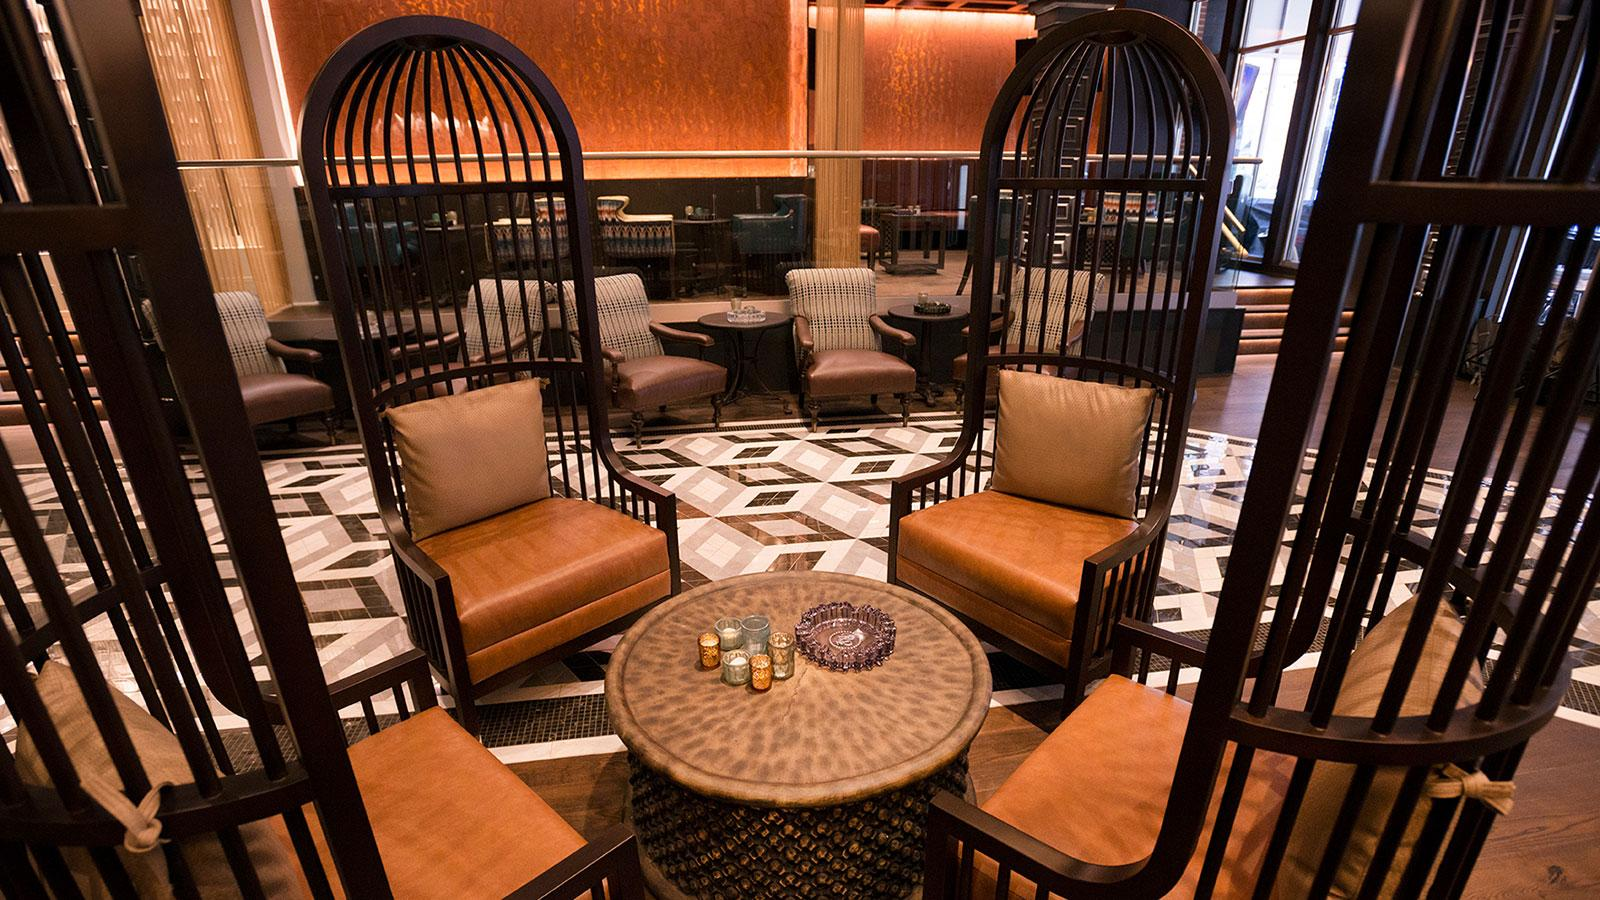 Rocky Patel plans on keeping Burn upscale. You can see it in the details, from the smart furniture down to the tiled floors.